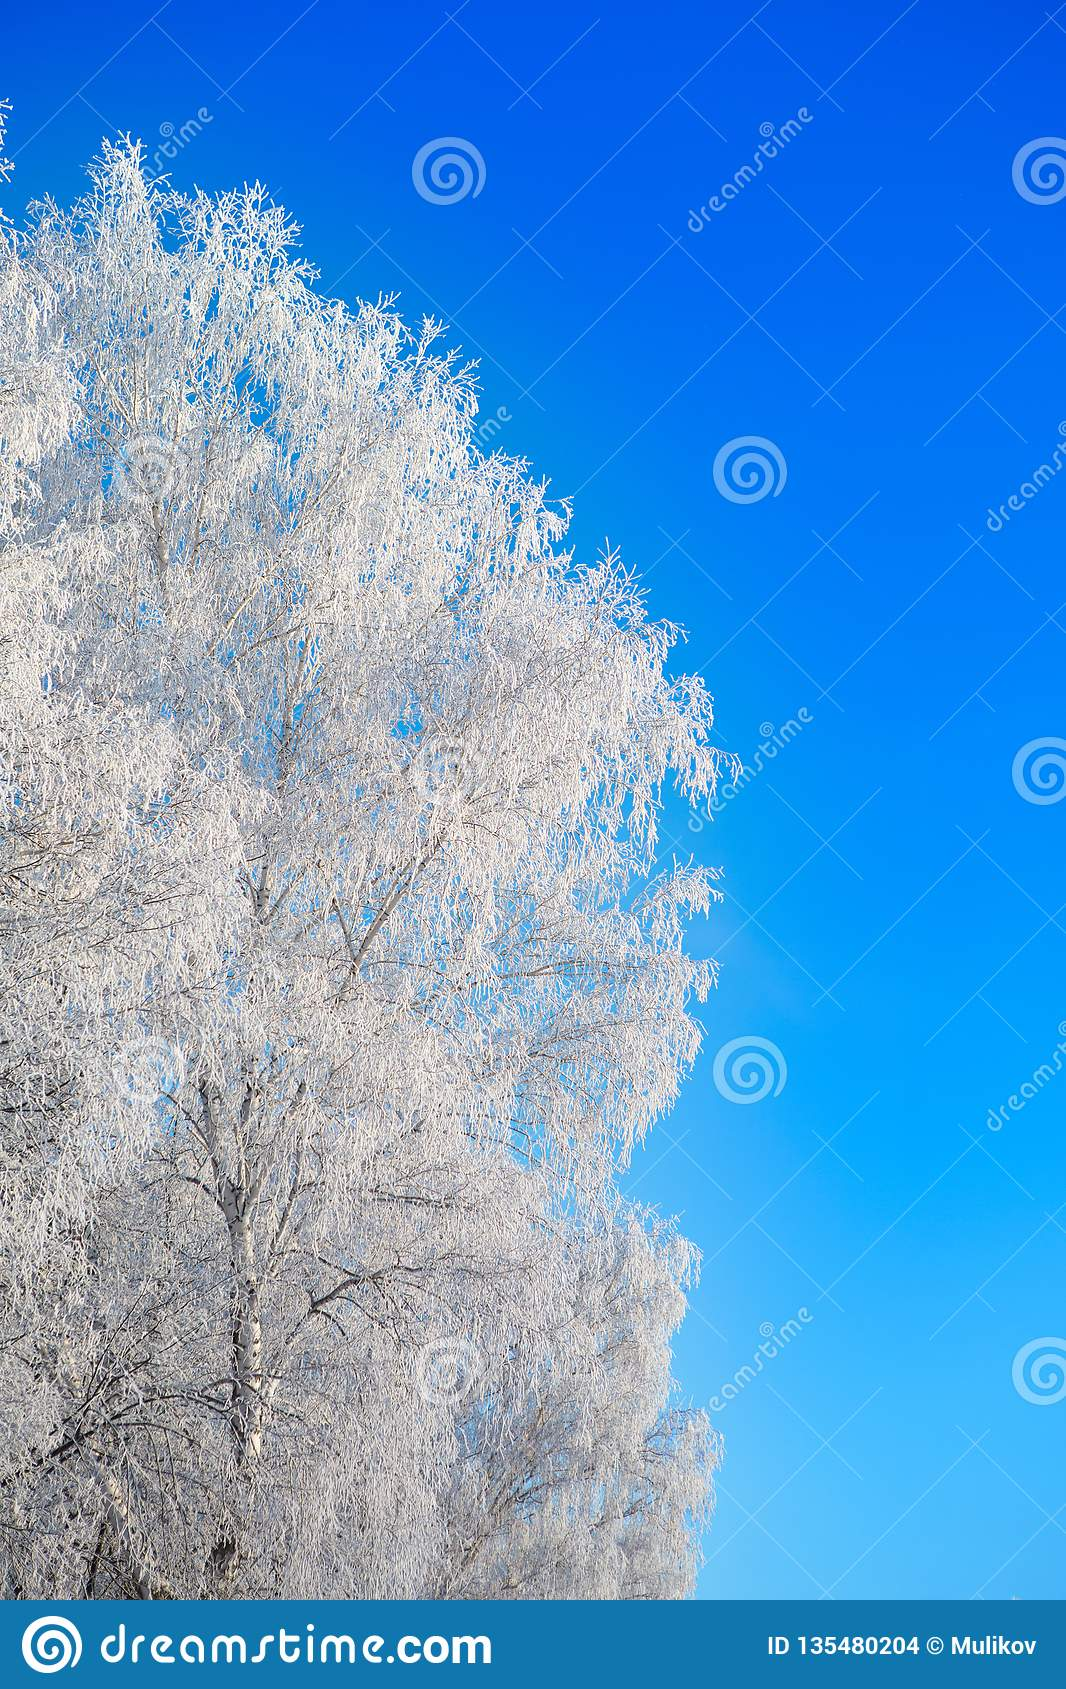 Snow covered winter birch tree tops blue sky. Winter landscape